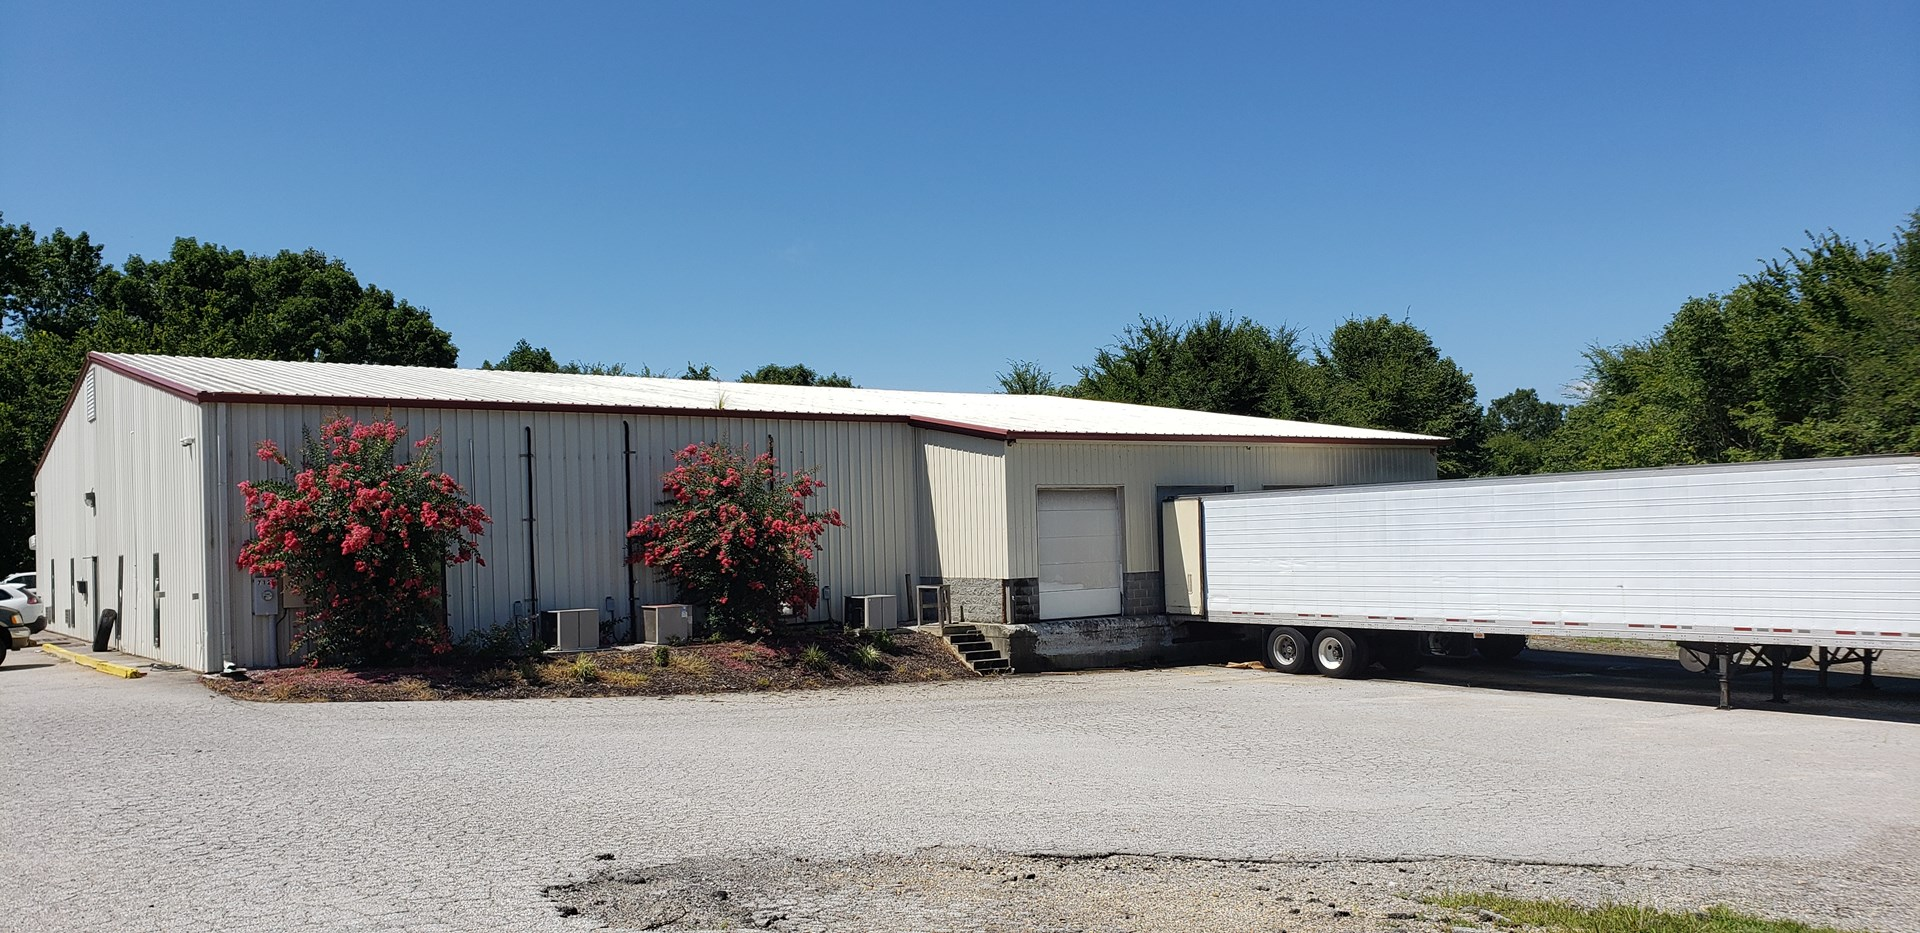 Refrigerated Warehouse On Large Acreage in Danville, VA